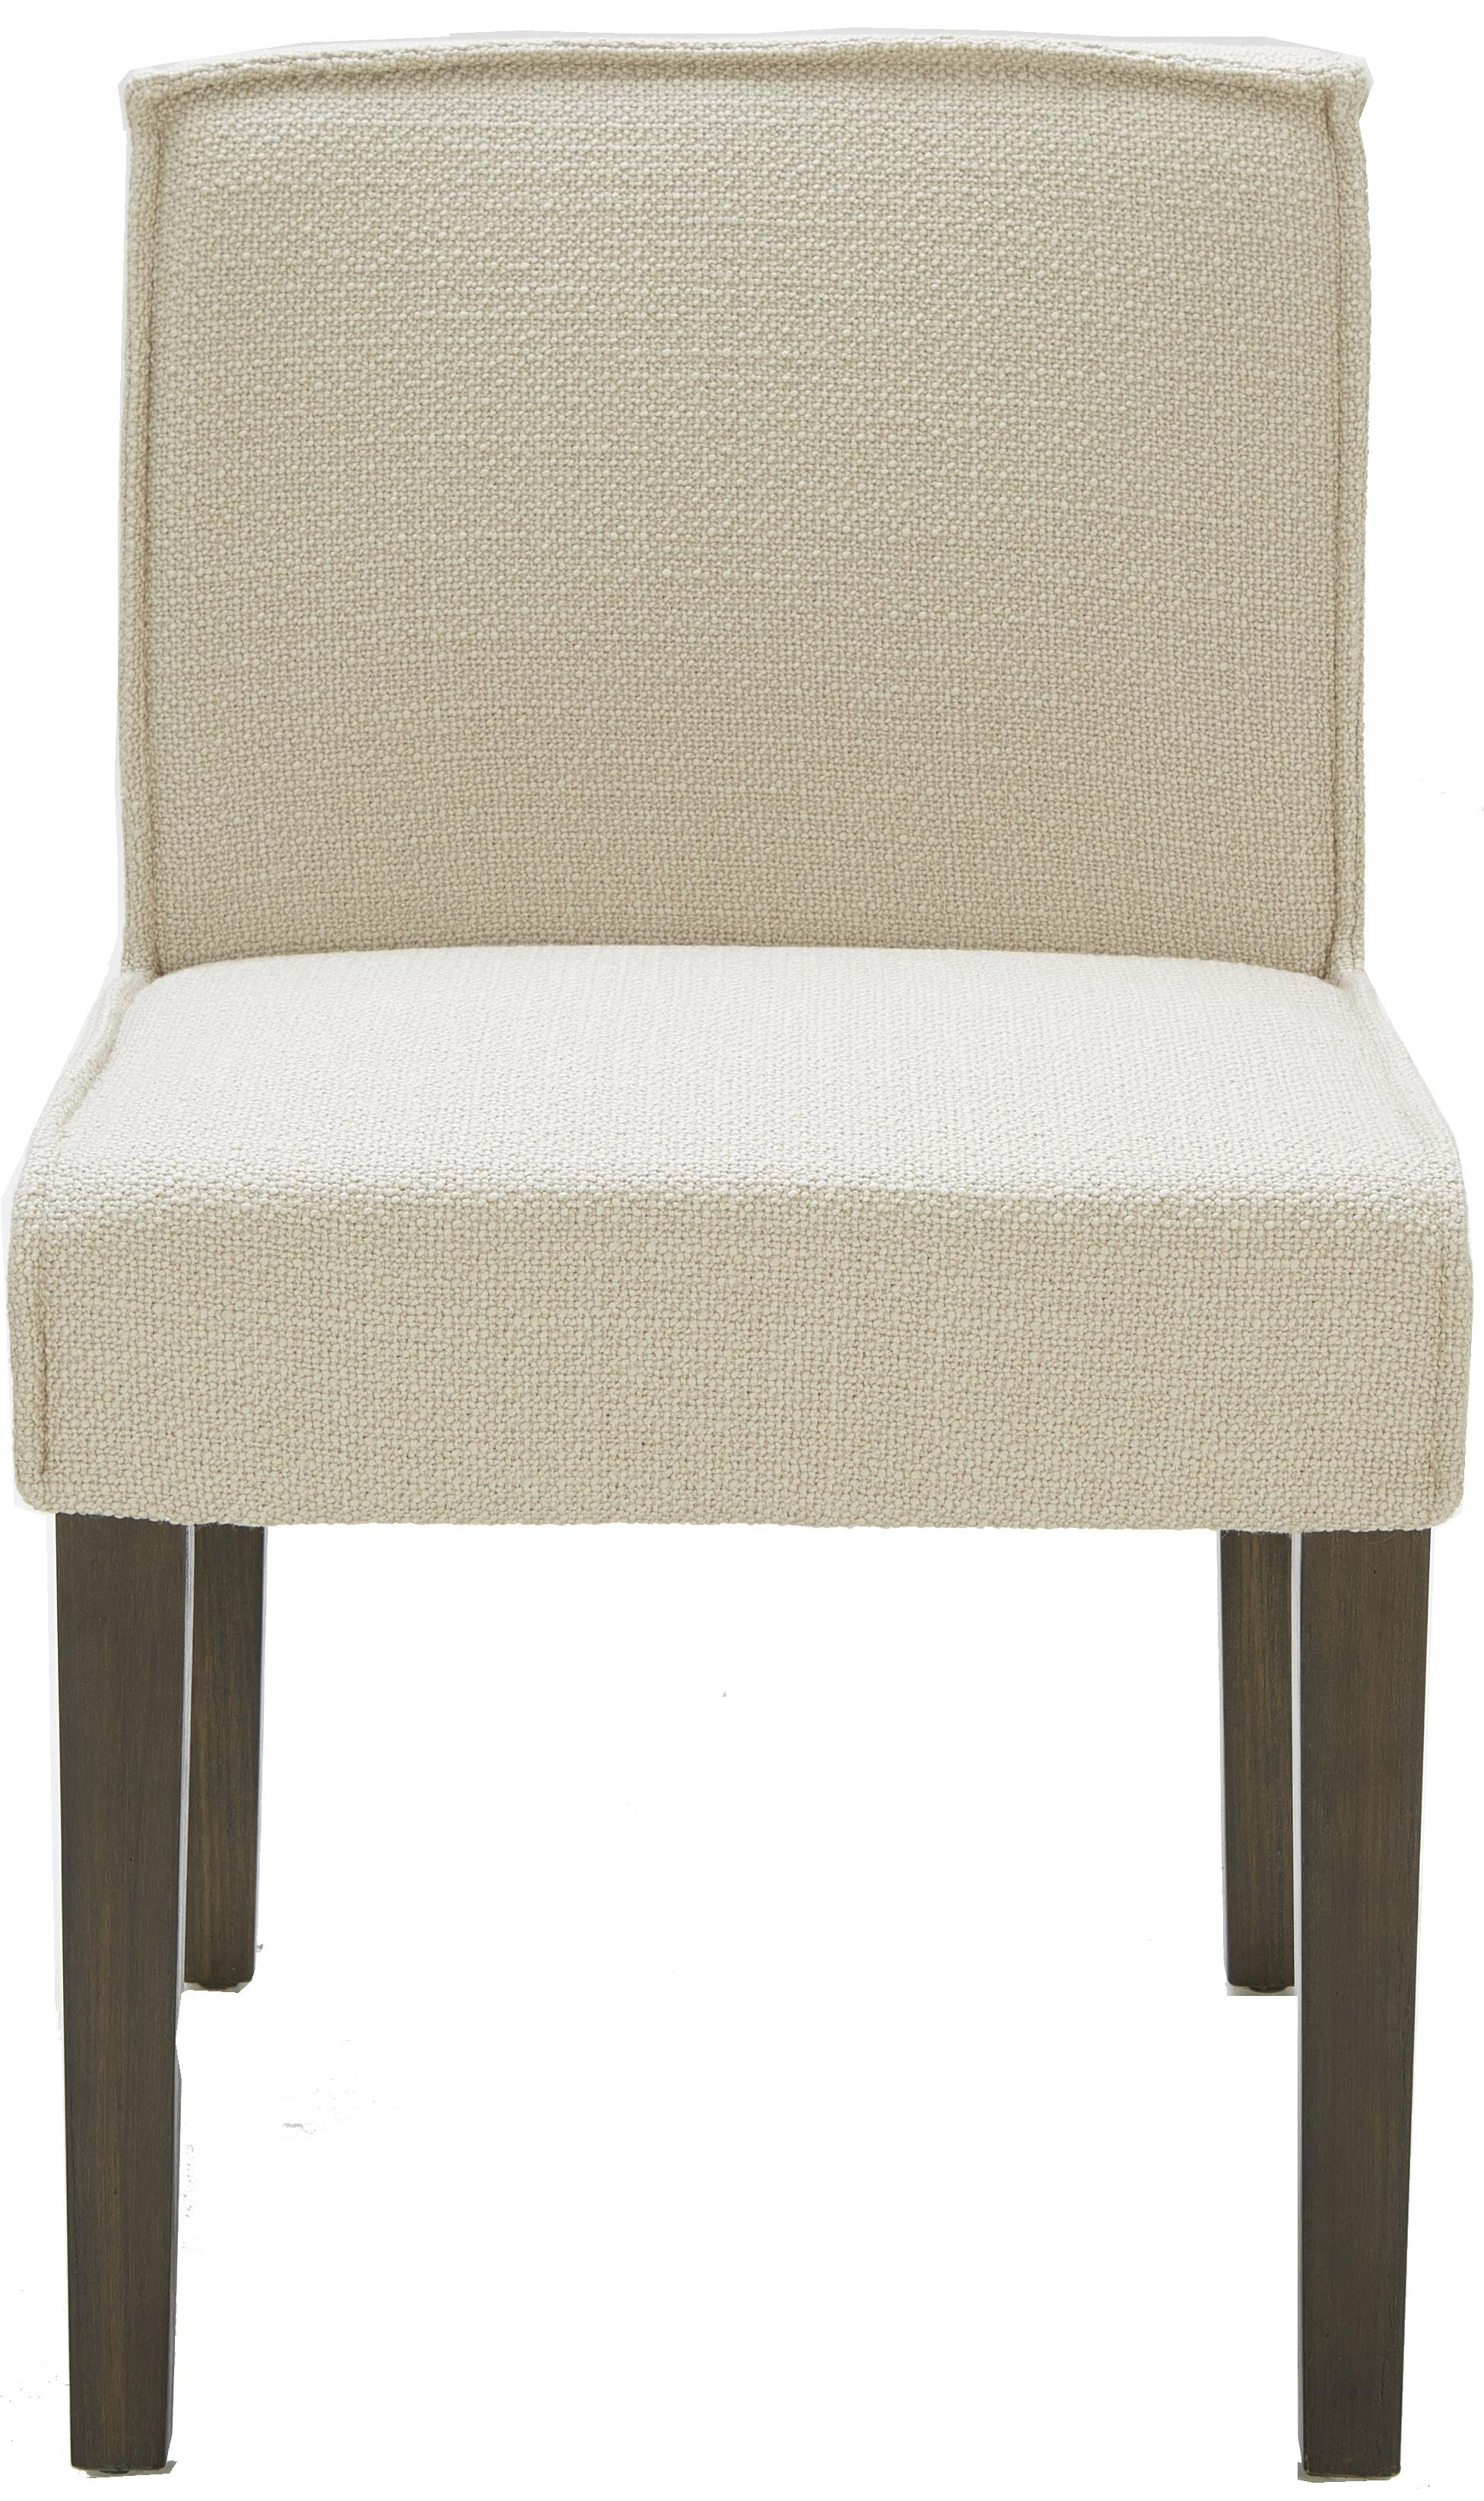 Urban Evolution Urban Dining Chairs Miles Side Chair - Item Number: Y-1120-D-239